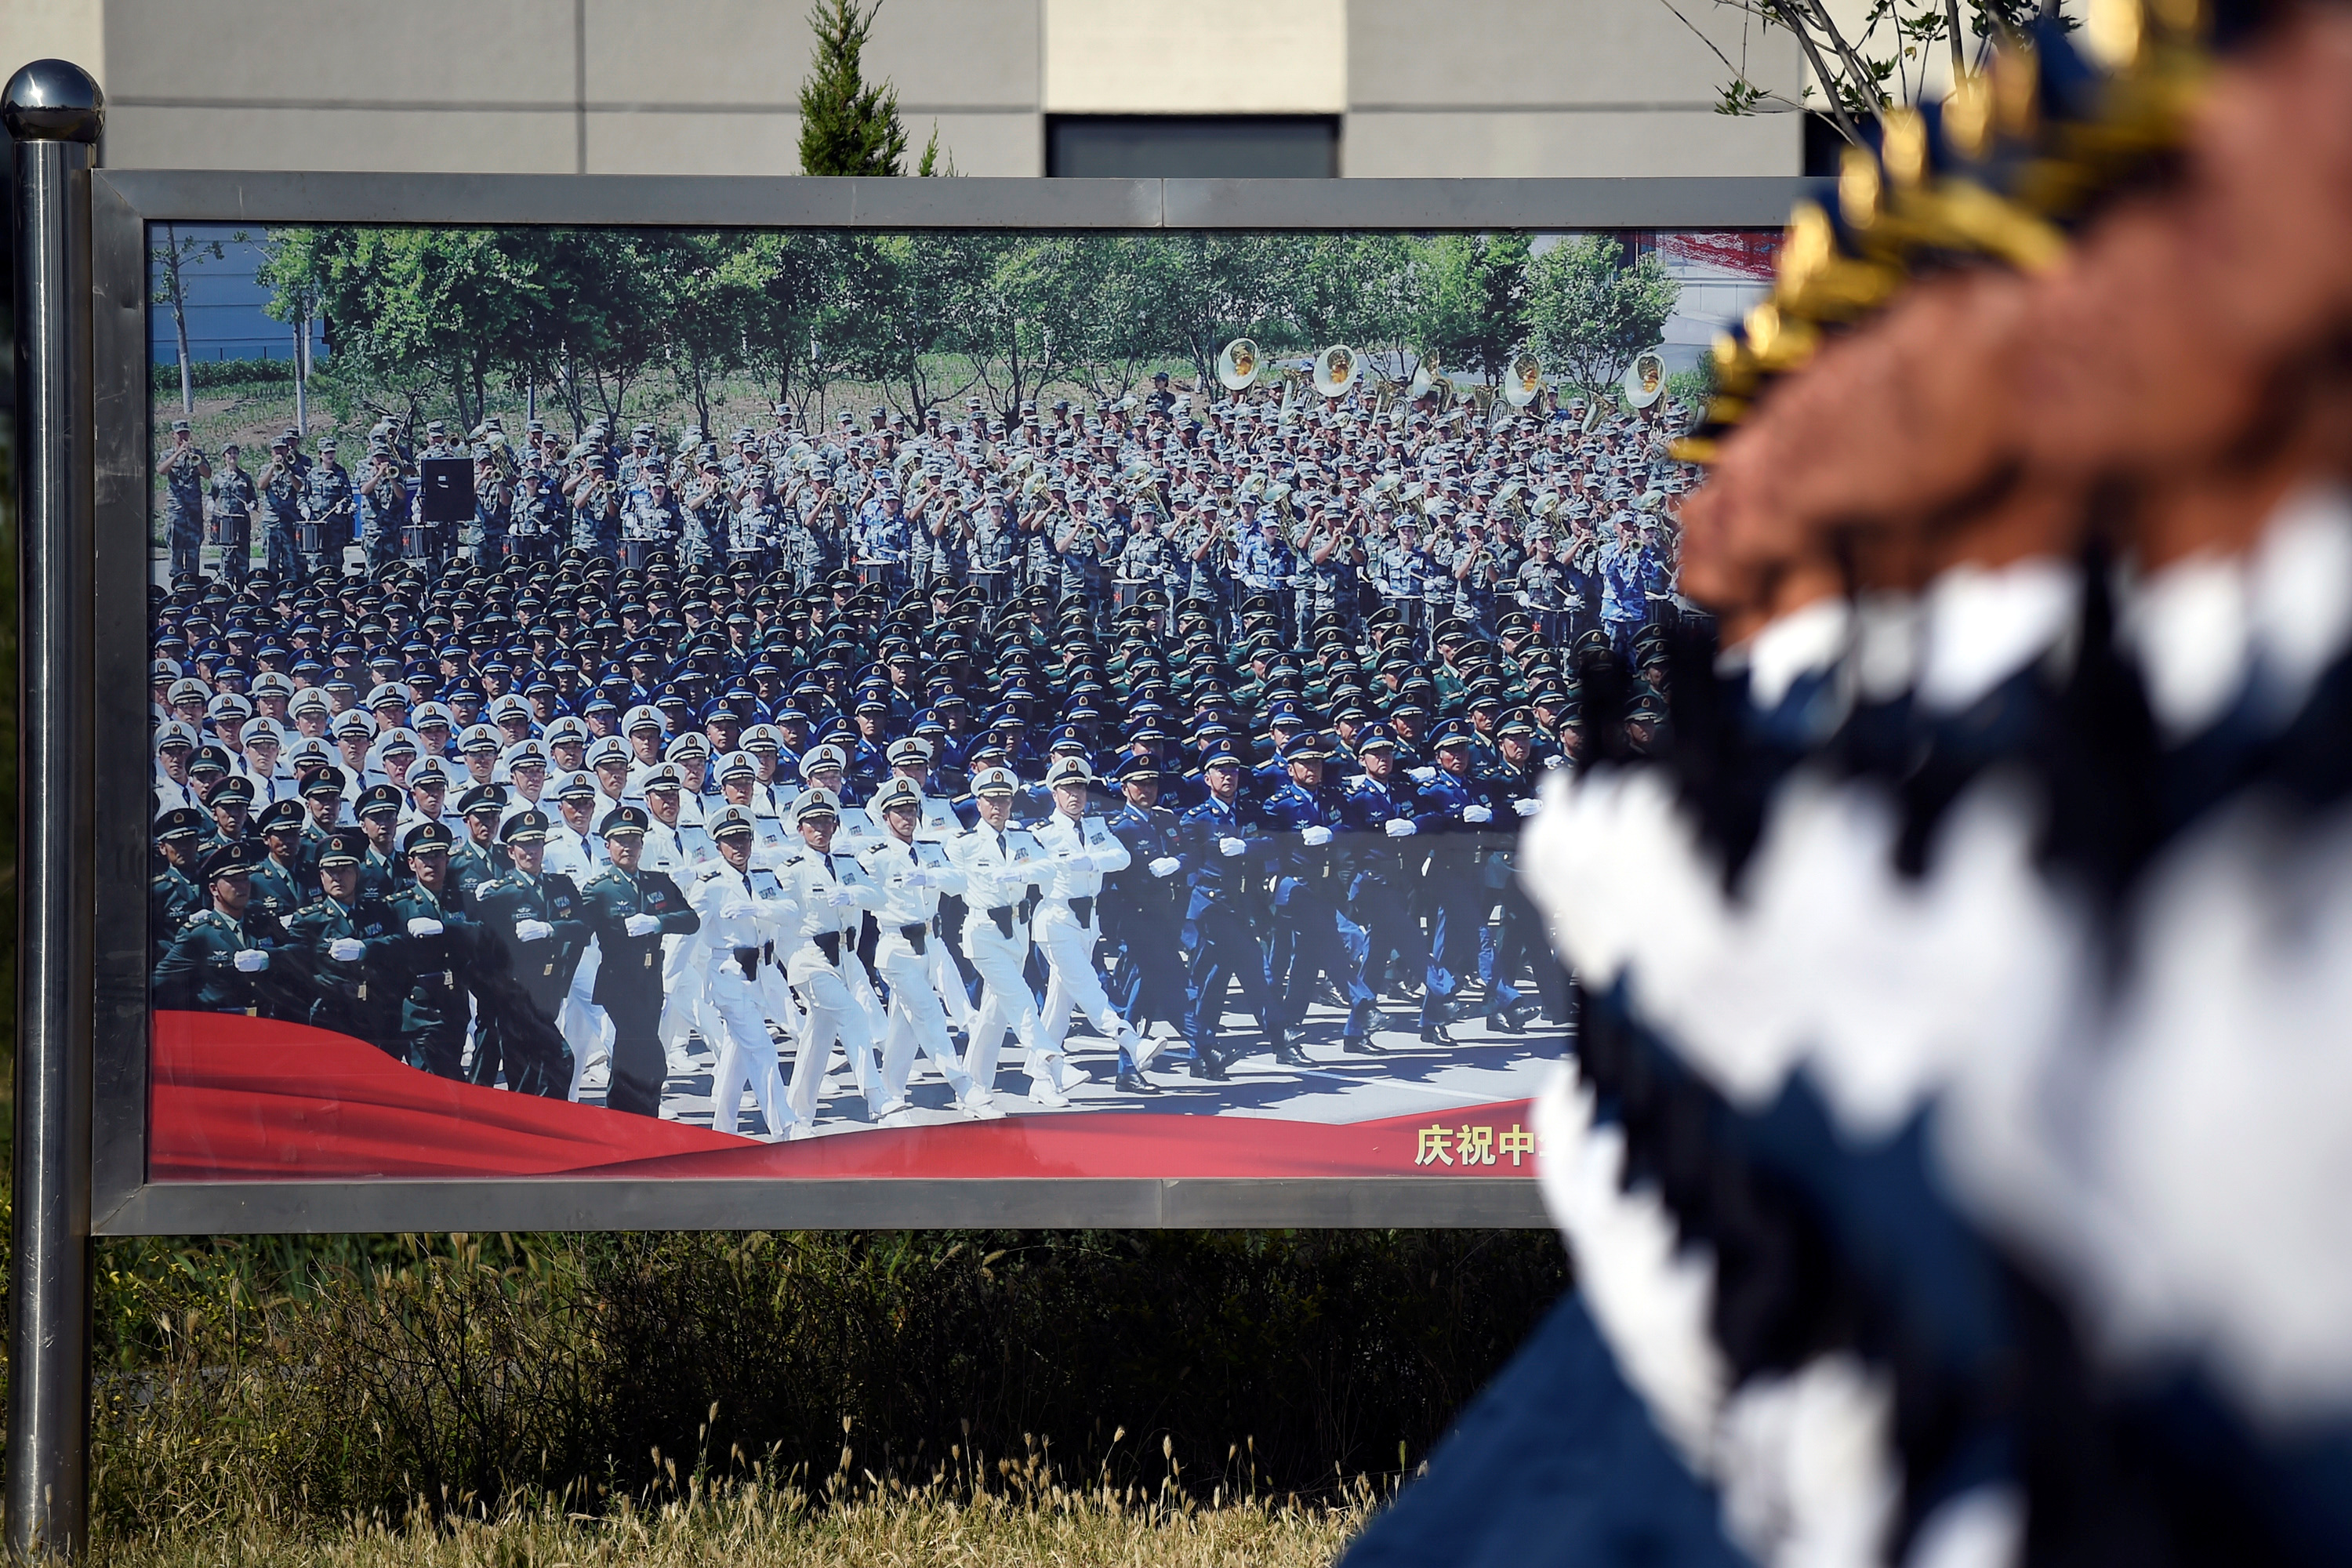 Chinese troops practice marching ahead of a October 1 military parade to celebrate the 70th anniversary of the founding of the People's Republic of China on the outskirts of Beijing, China September 25, 2019.